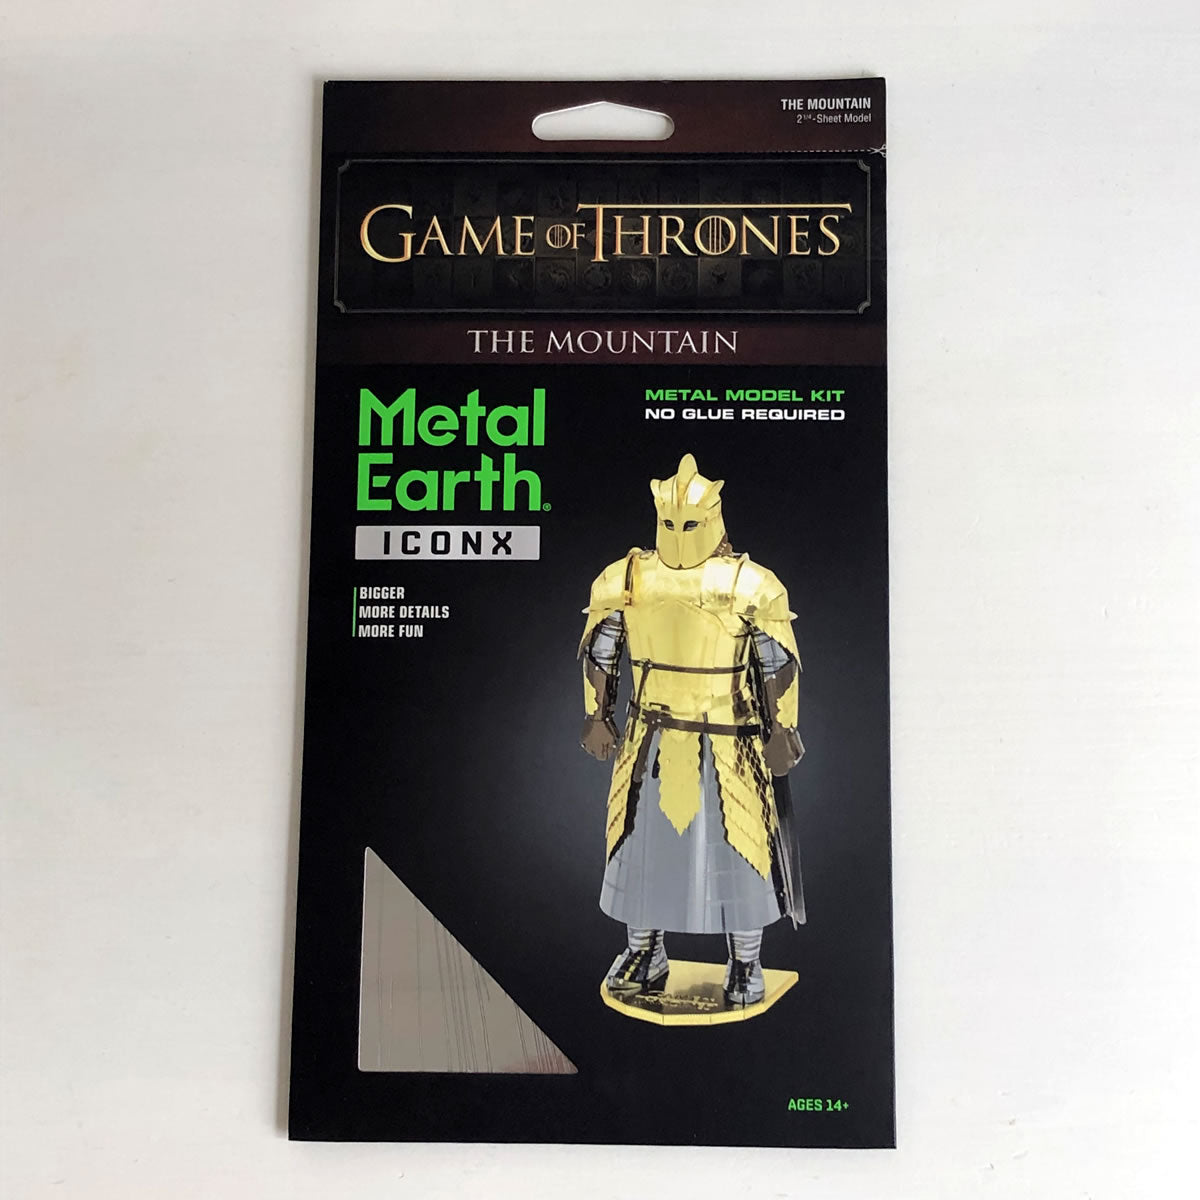 Metal Earth Game of Thrones The Mountain iconx Metal Model Kit